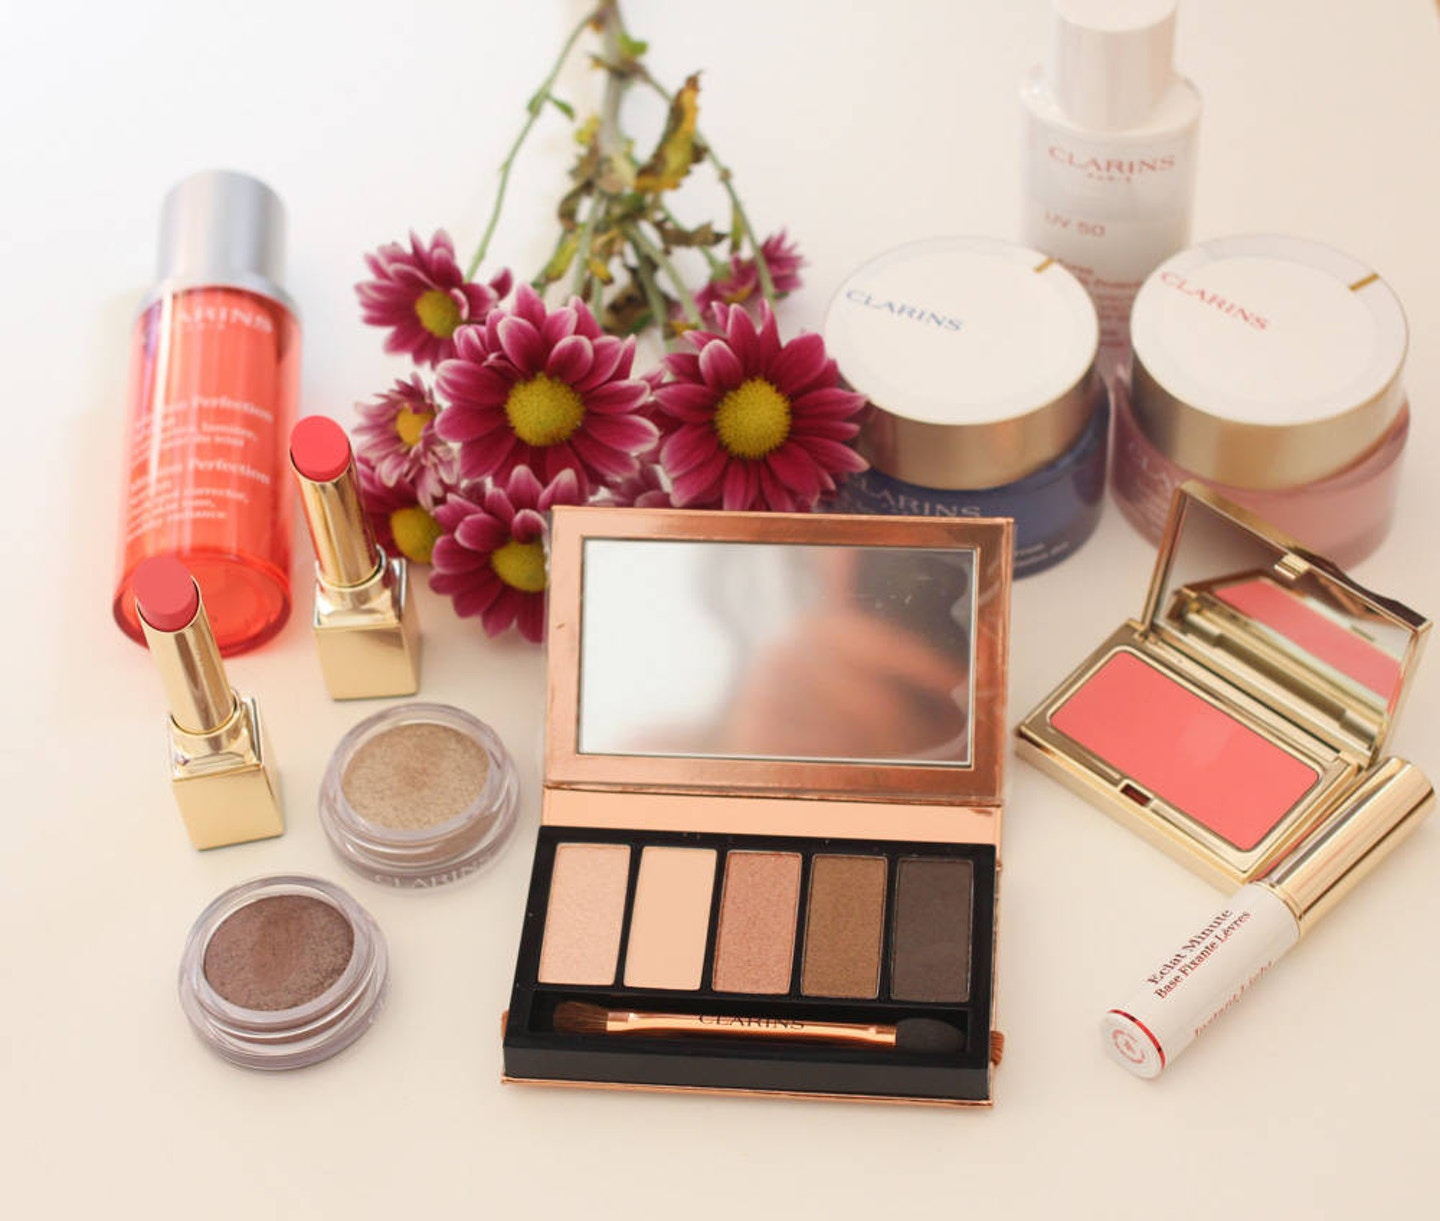 Clarins Multi-Active Review + a Spring Beauty look